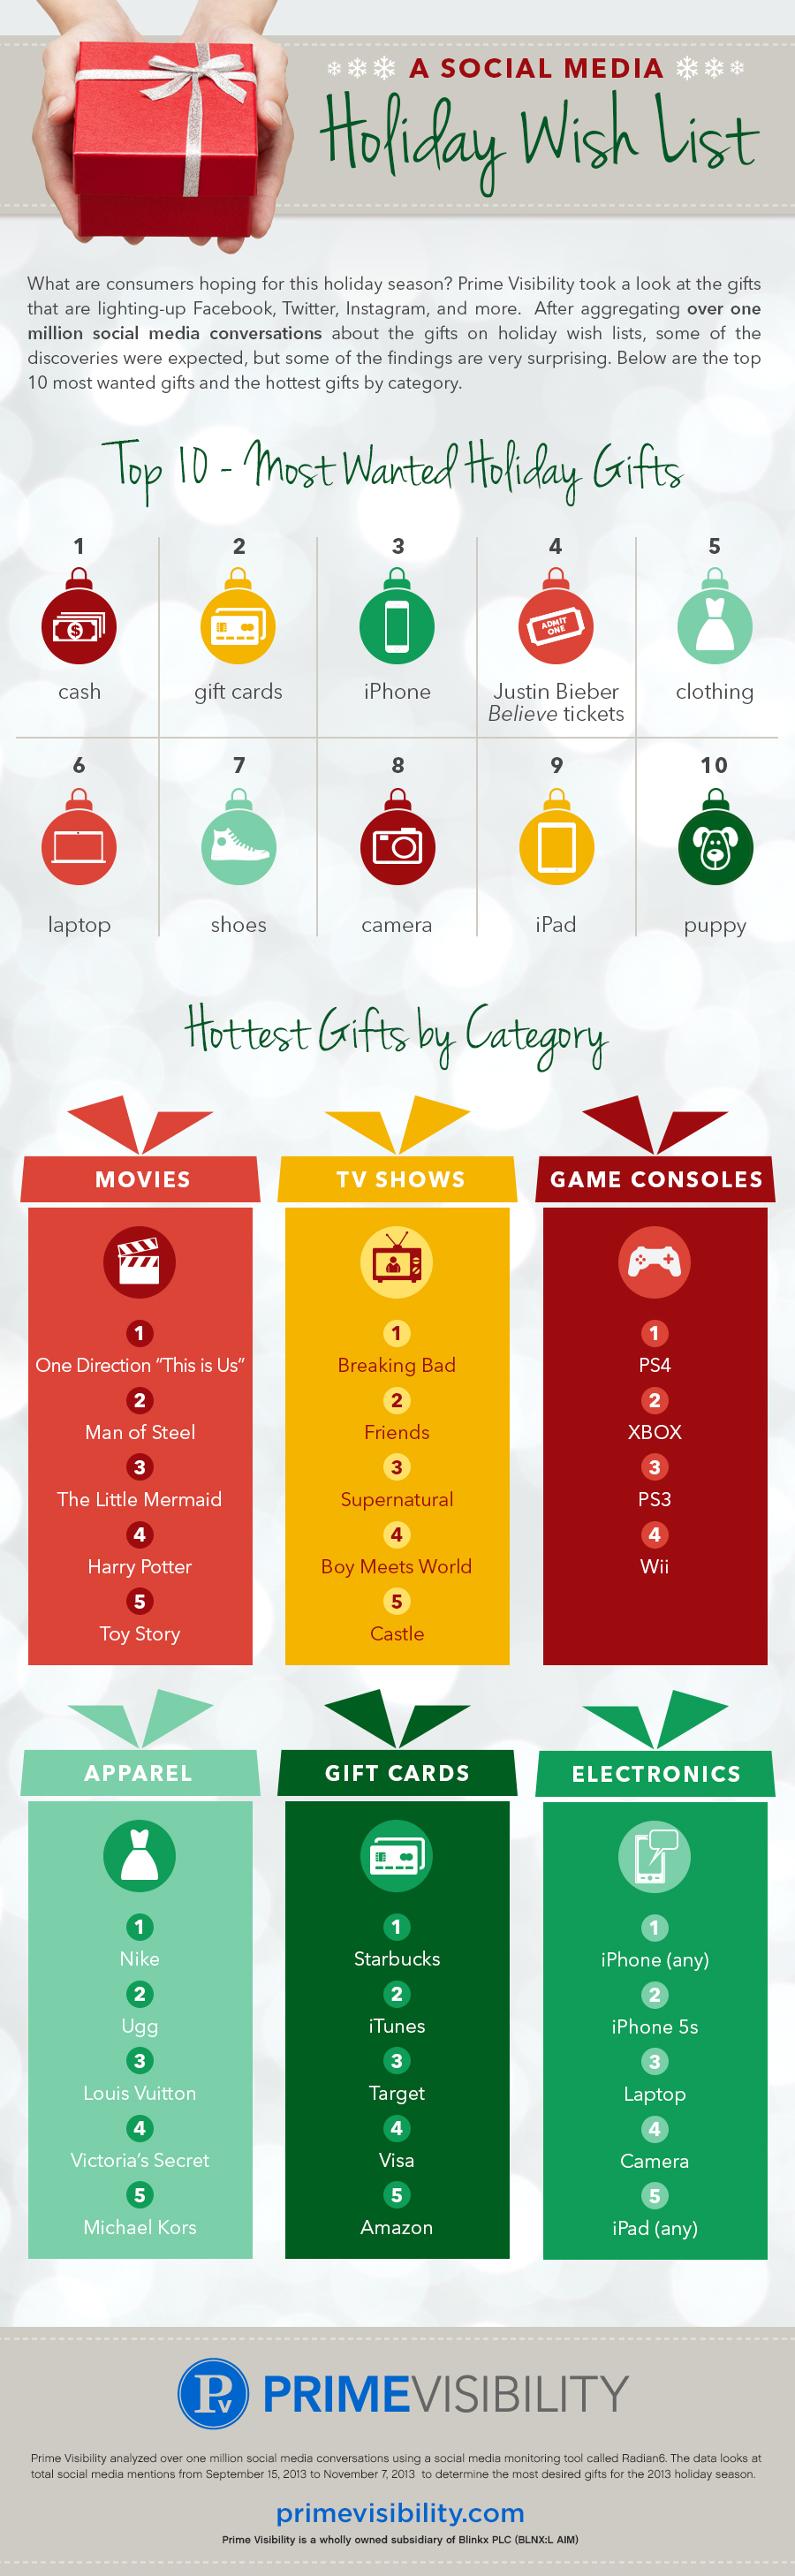 36b035380dd The Top 10 Most Wanted Holiday Gifts (As Chosen By Social Media Users)   infographic  marketing  socialmedia